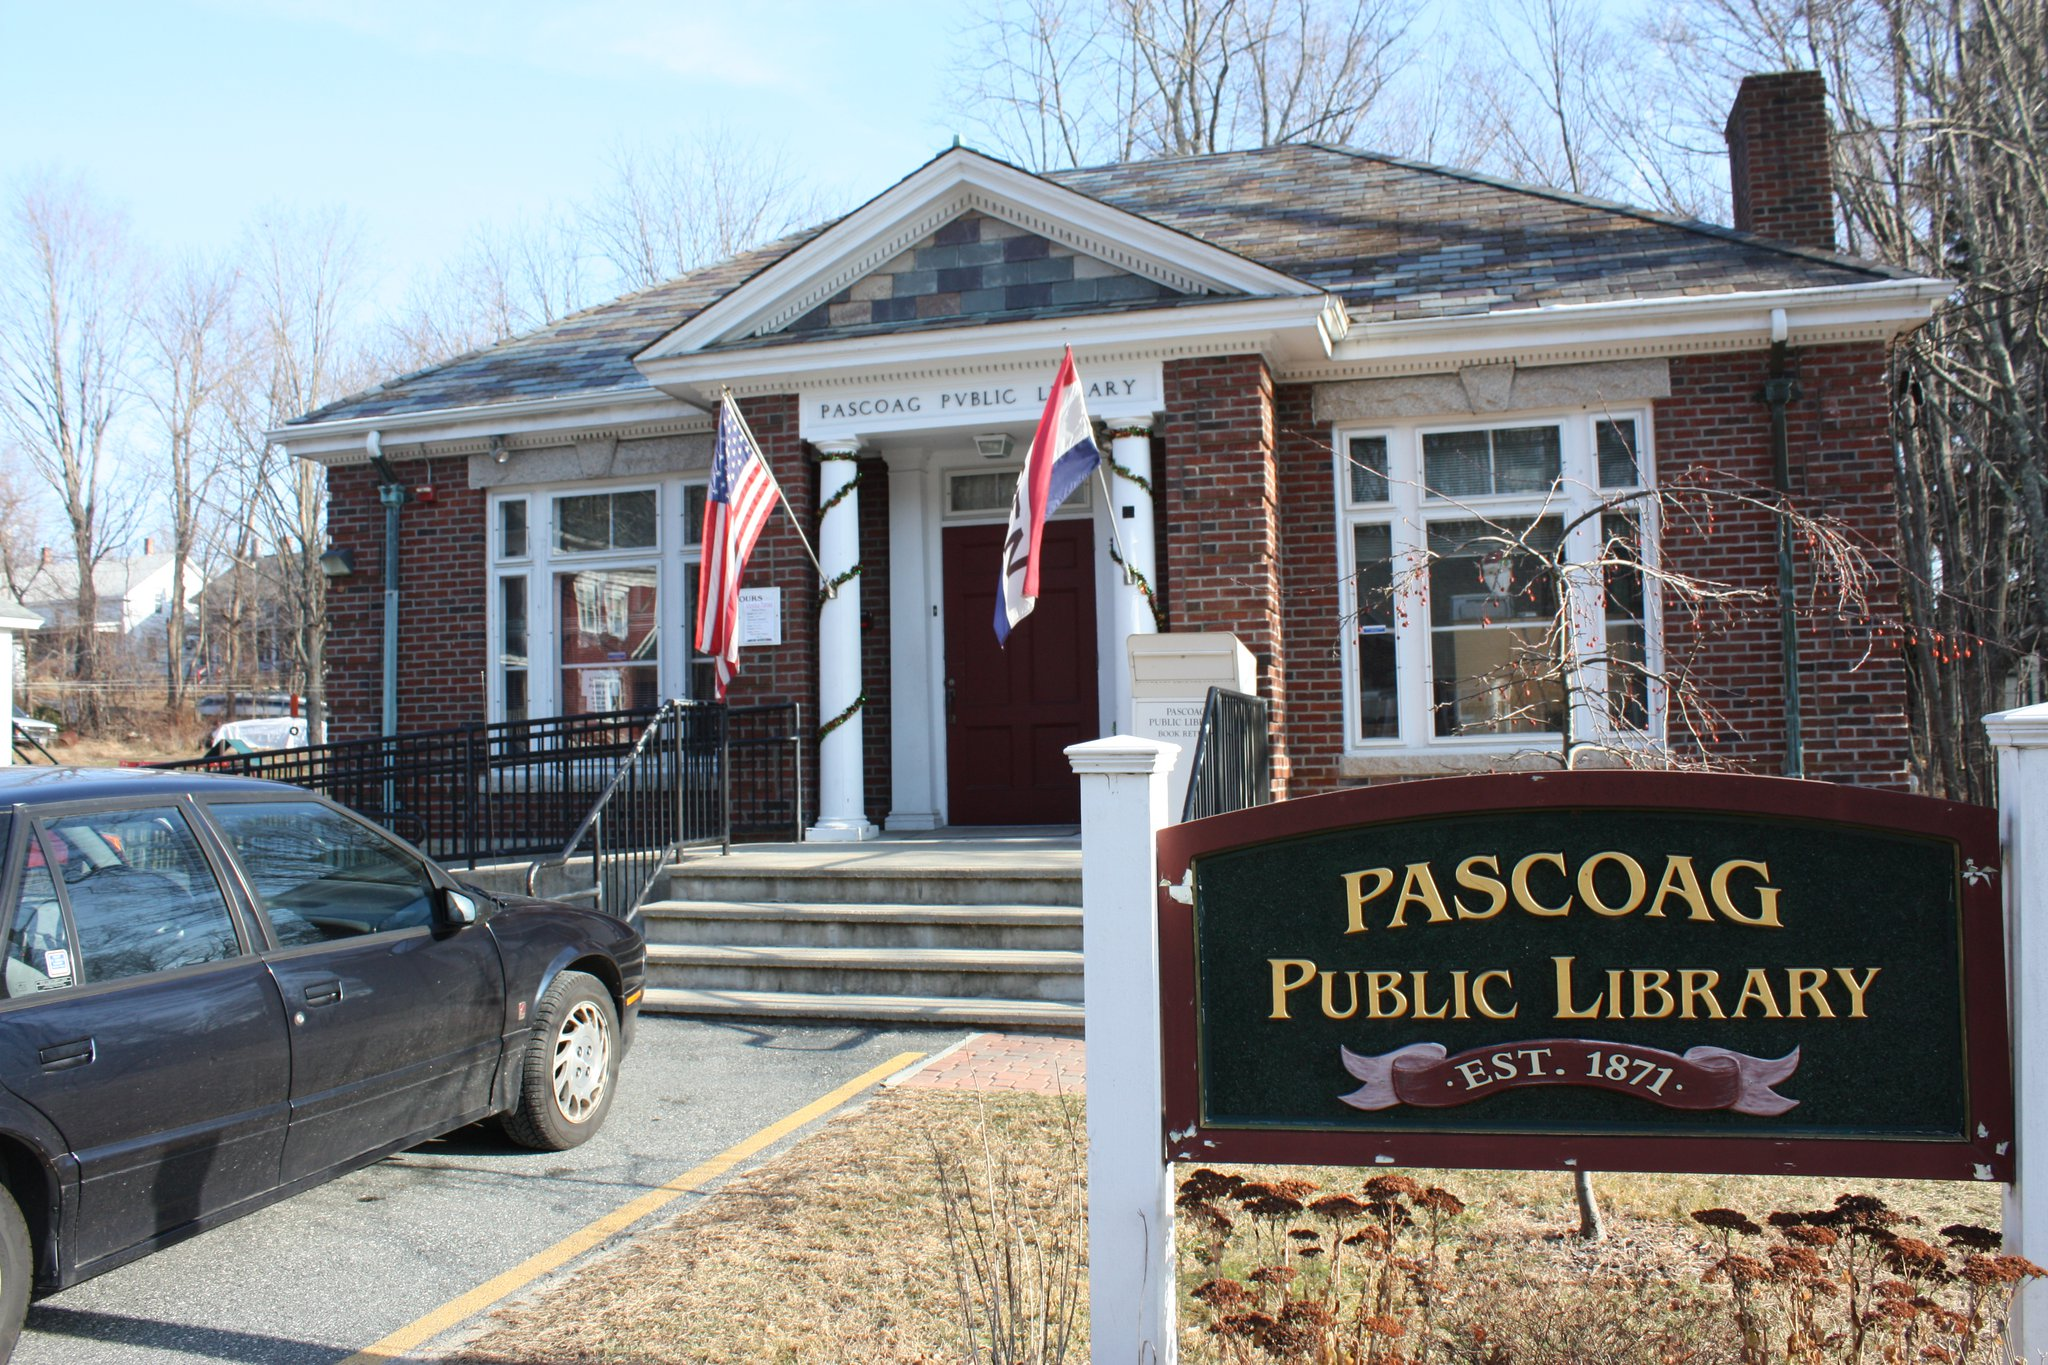 Pascoag Public Library